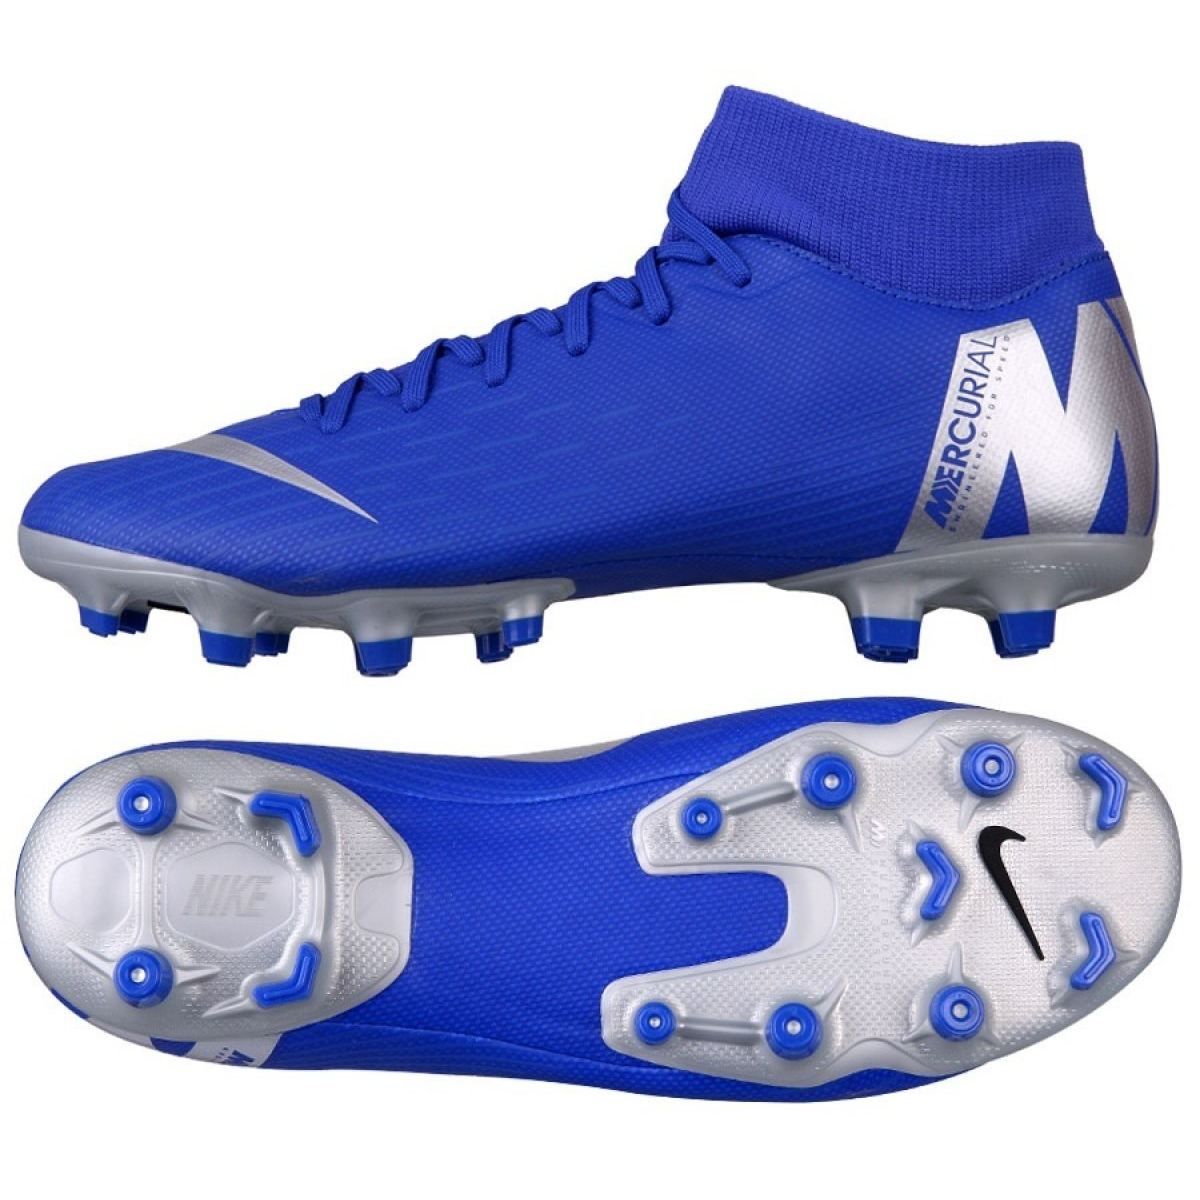 Resistente trimestre Posicionar  Nike Mercurial Superfly 6 Academy FG / MG M AH7362-400 football shoes blue  multicolored - ButyModne.pl